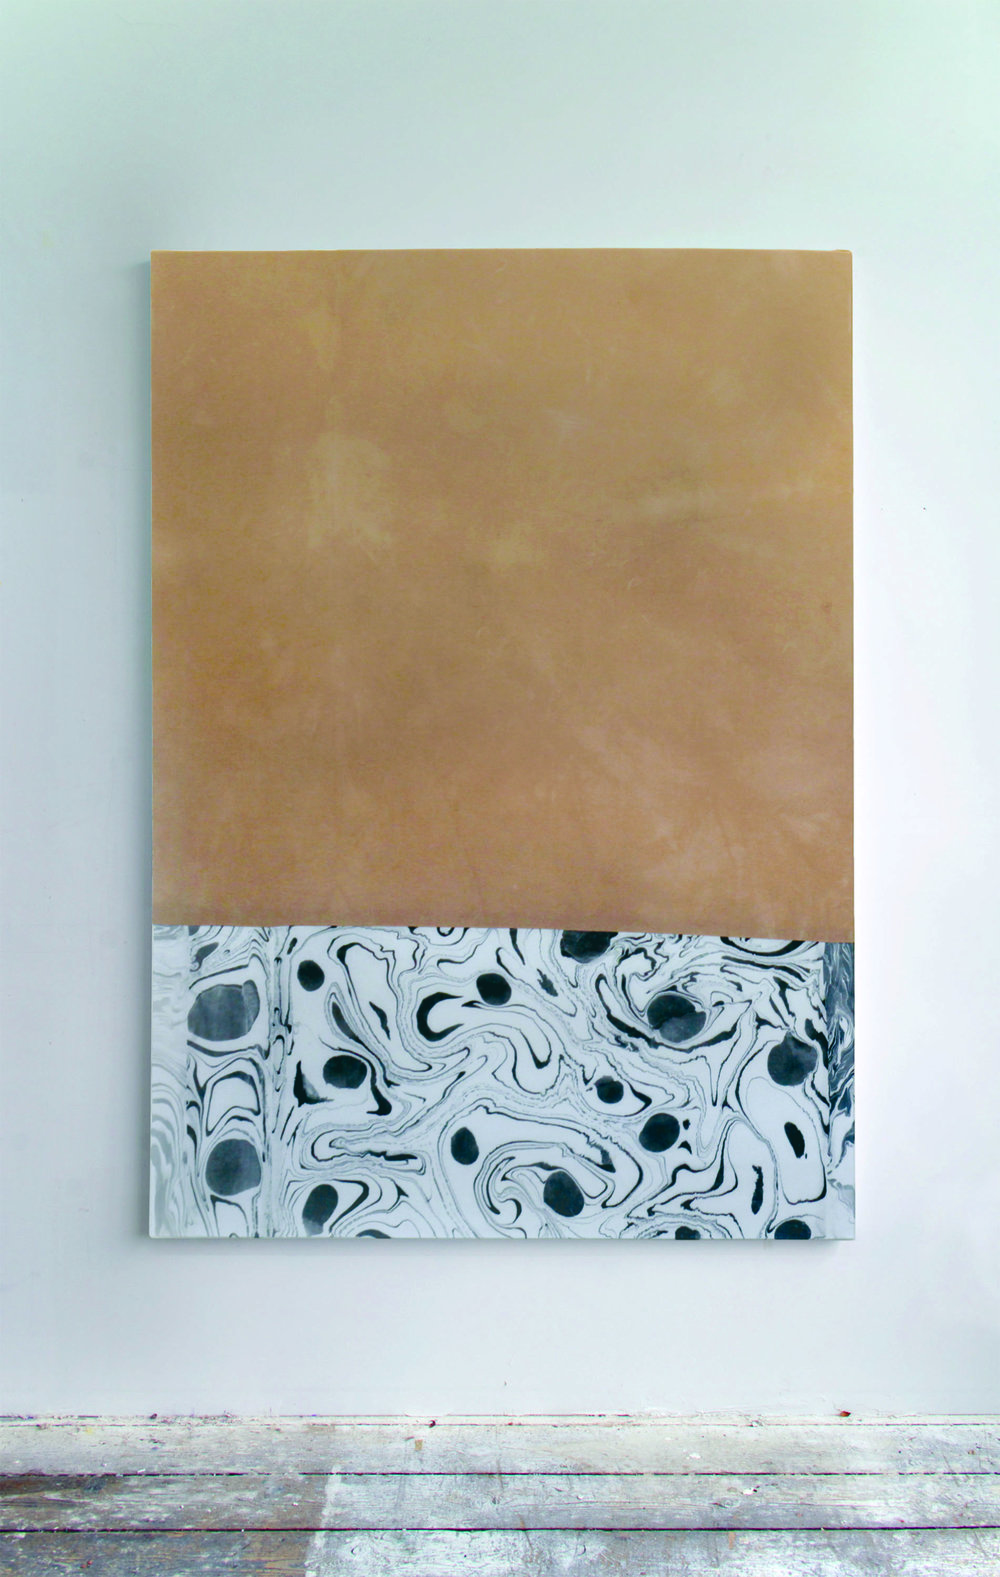 Endings Begin,  2018  Onion skin dyed cotton, marbled linen, thread